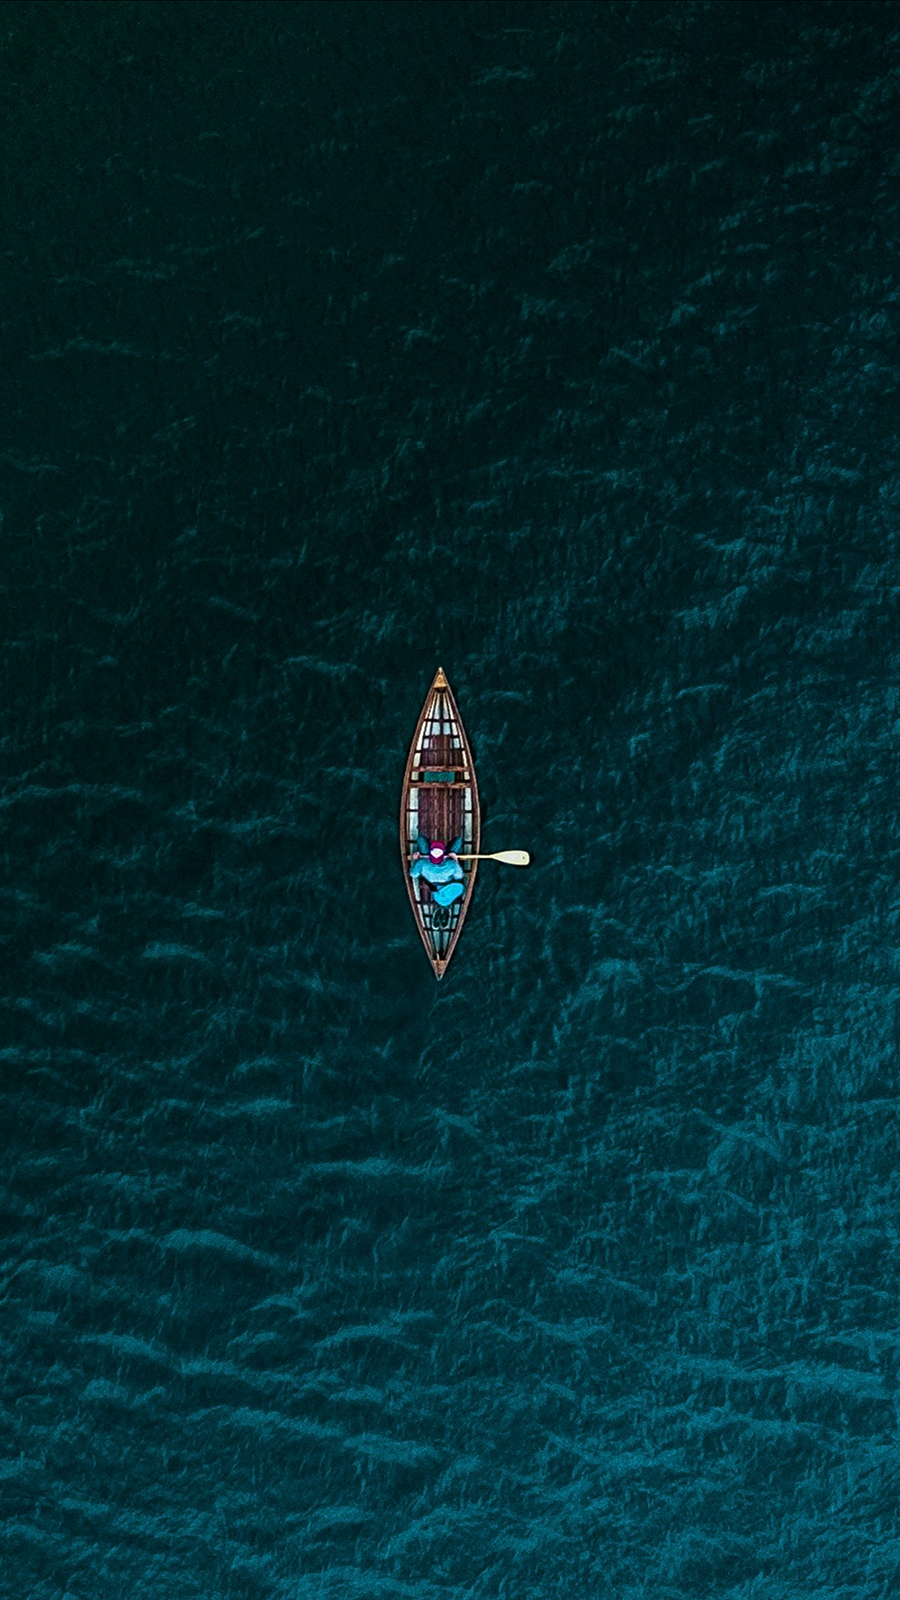 Wallpapers about the Sea and the Small Boat